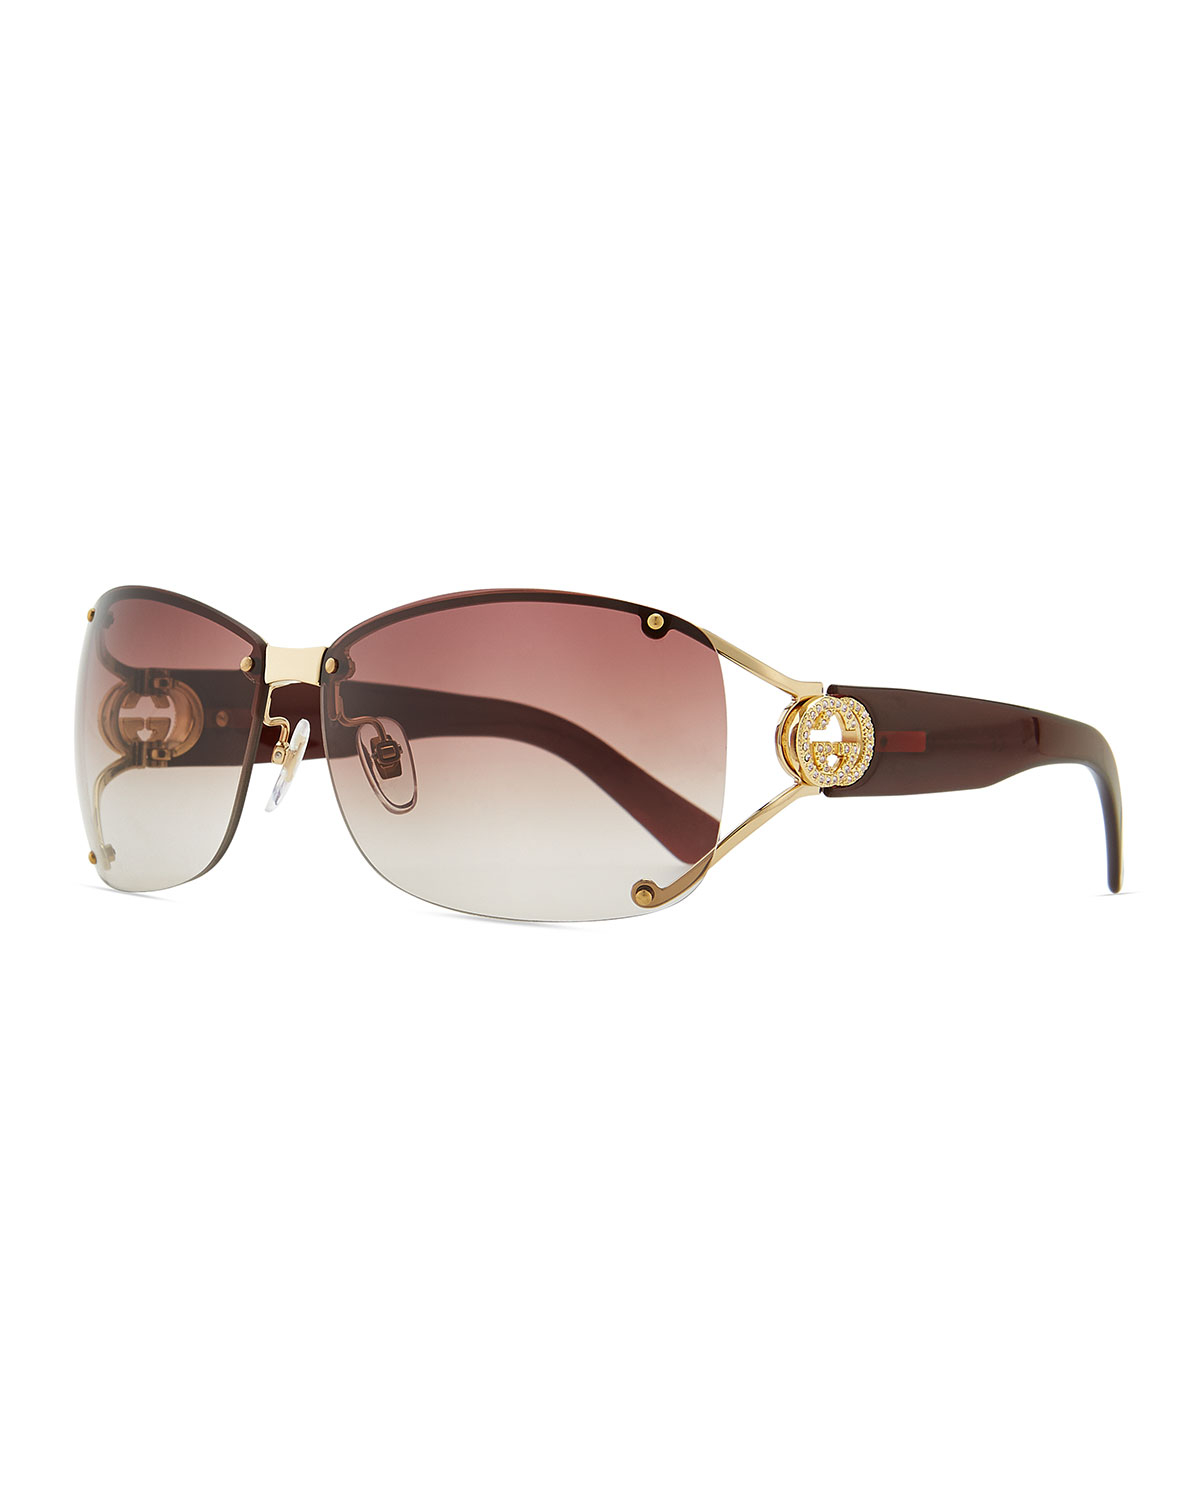 79fde8c8ec7 Lyst - Gucci Oval Gradient Sunglasses With Open Gg Temple in Metallic